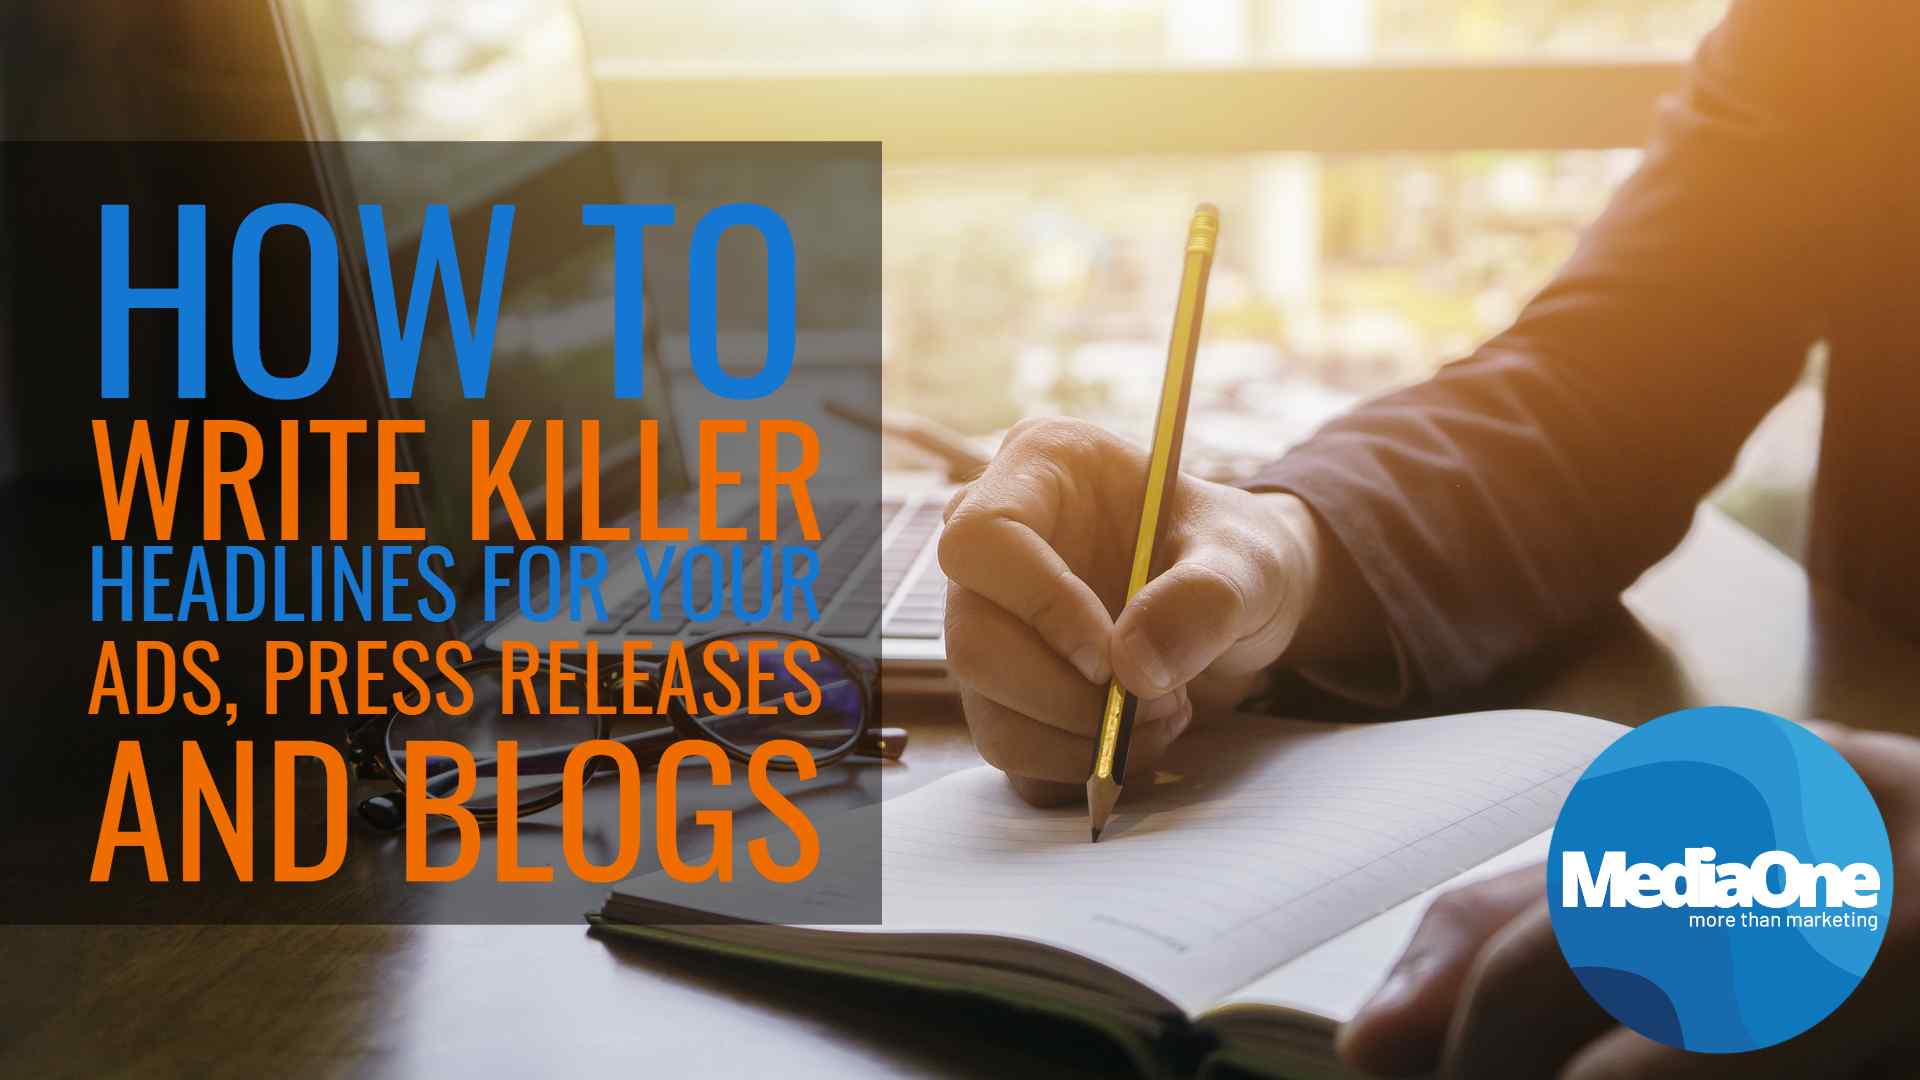 how-to-write-killer-headlines-for-your-ads-press-releases-blogs-3